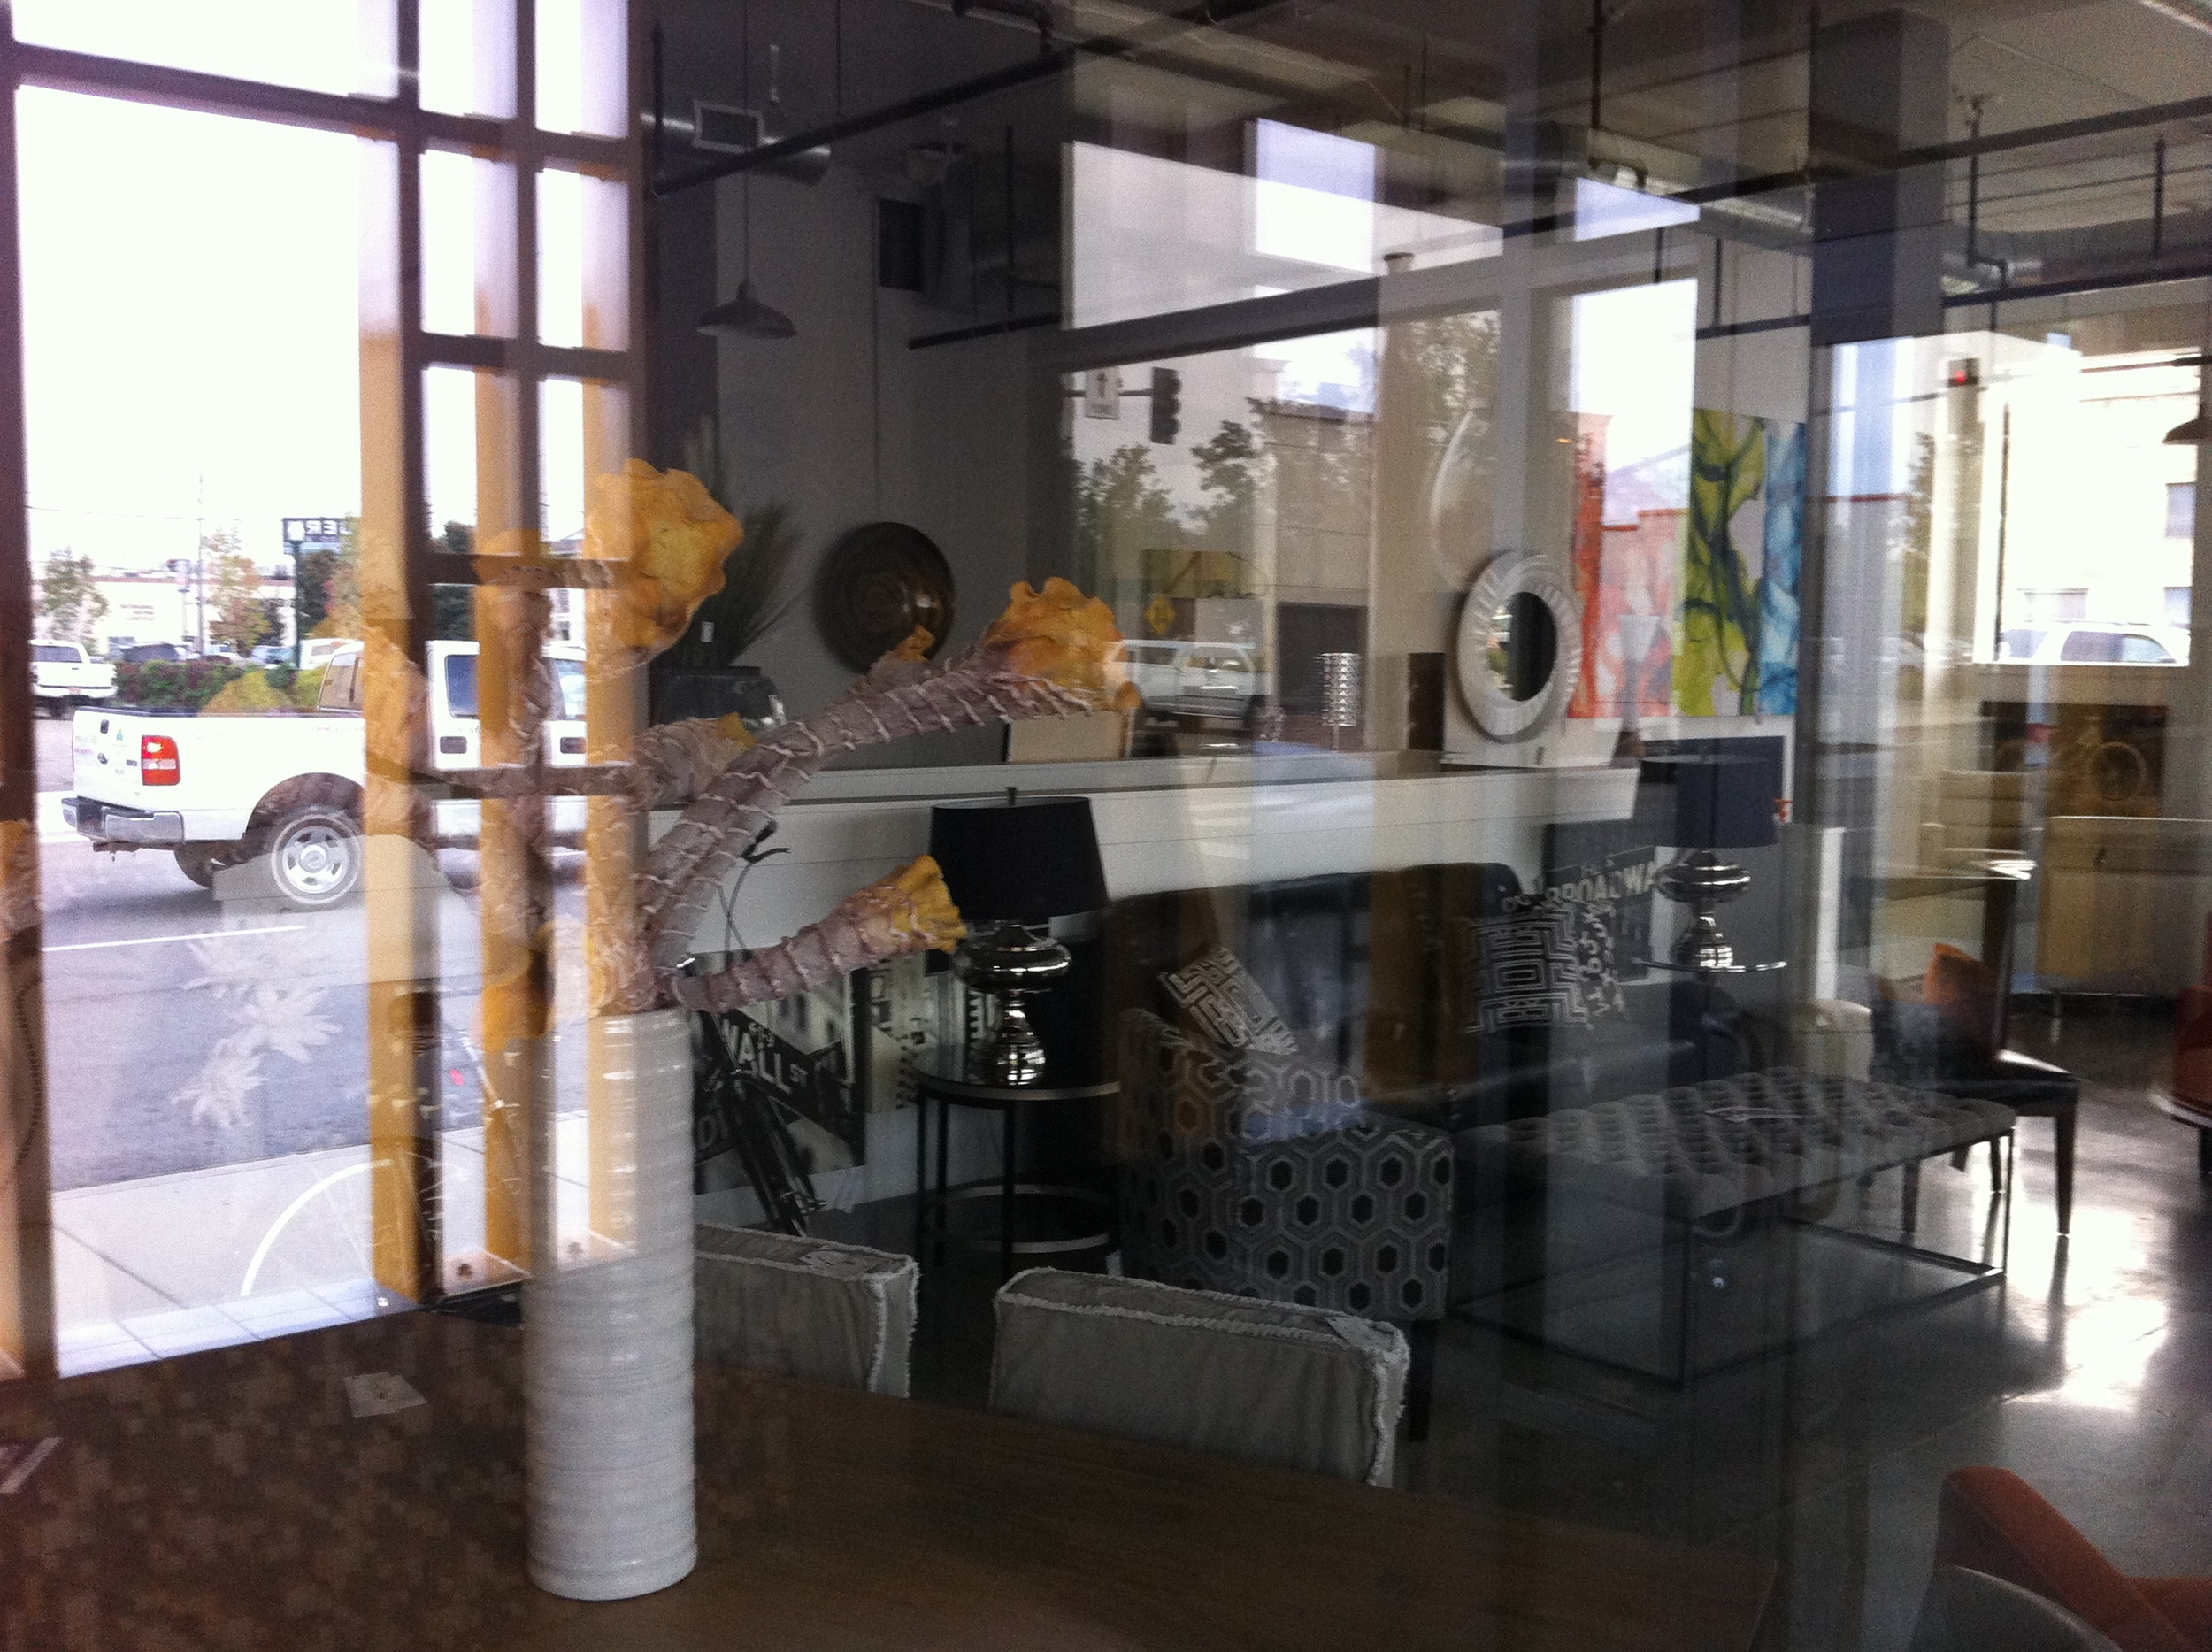 Window licking at Echelon an upscale furniture and home accessories store.